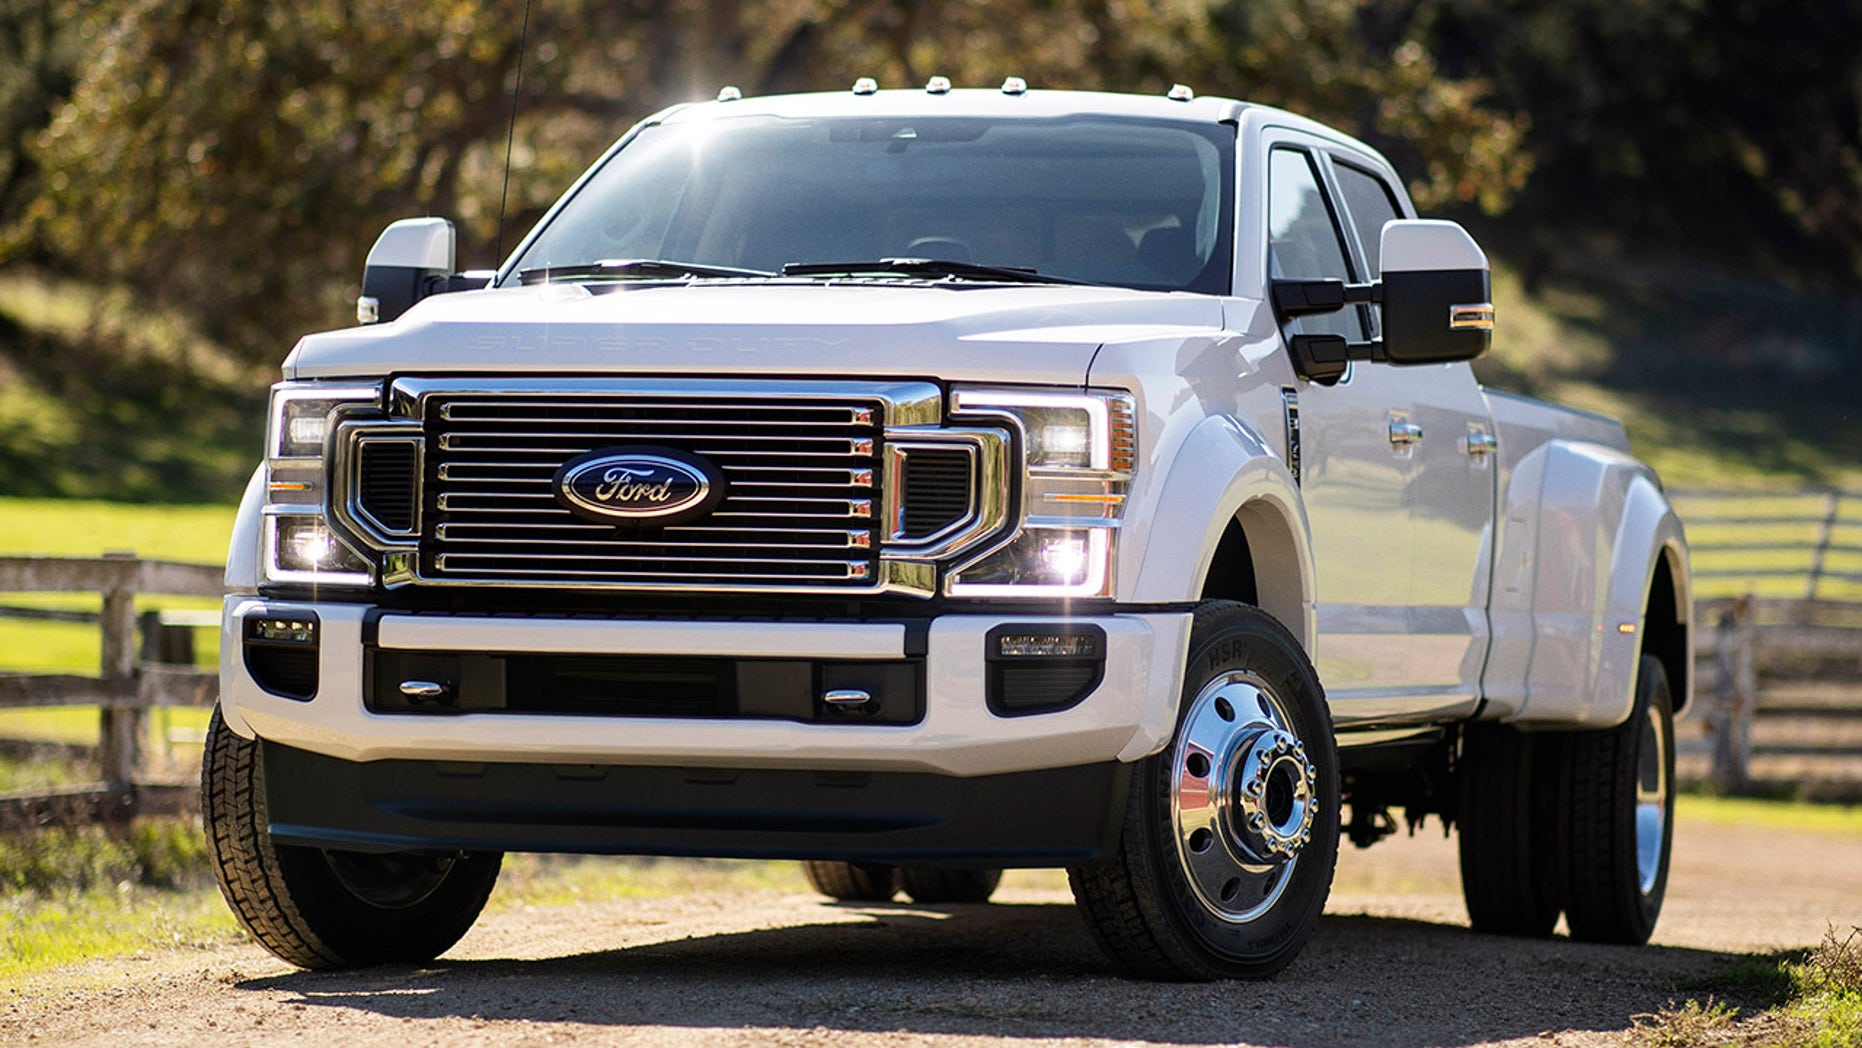 2020 Ford F-Series Super Duty 450